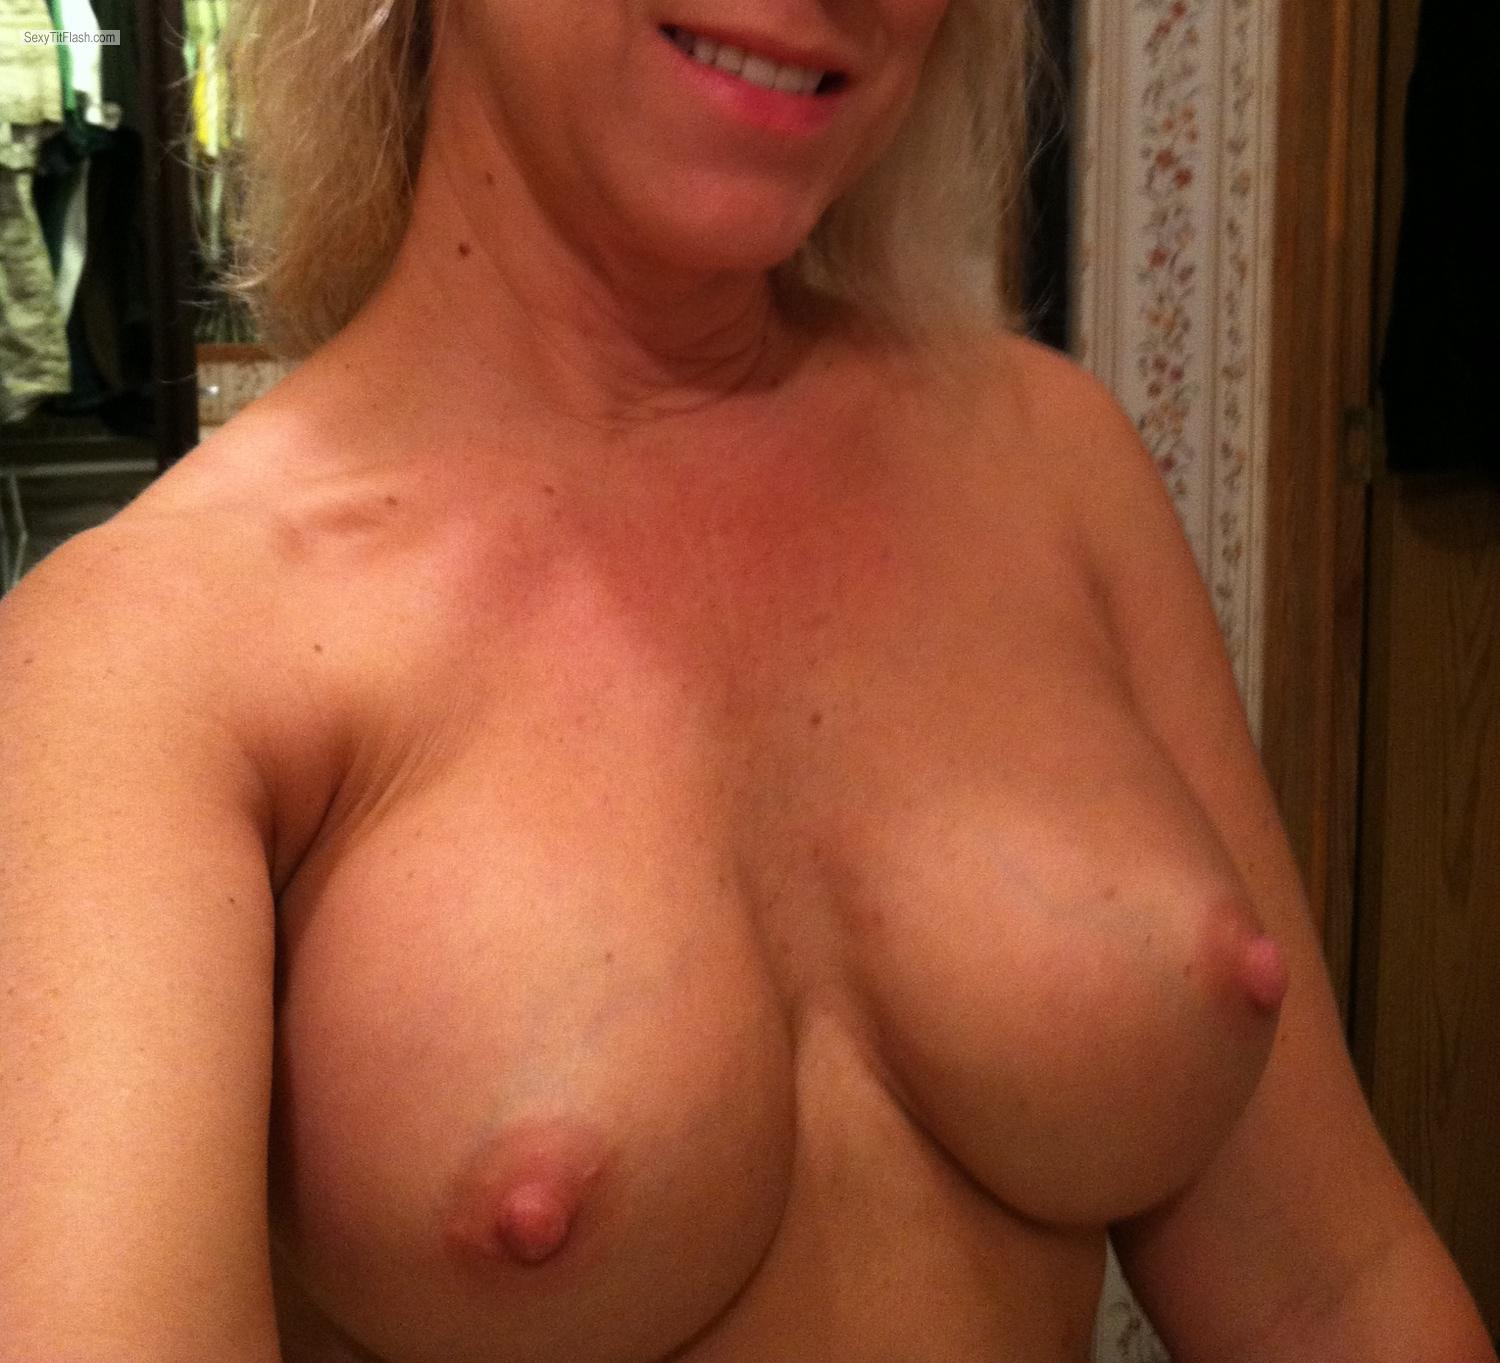 Big tits on phone